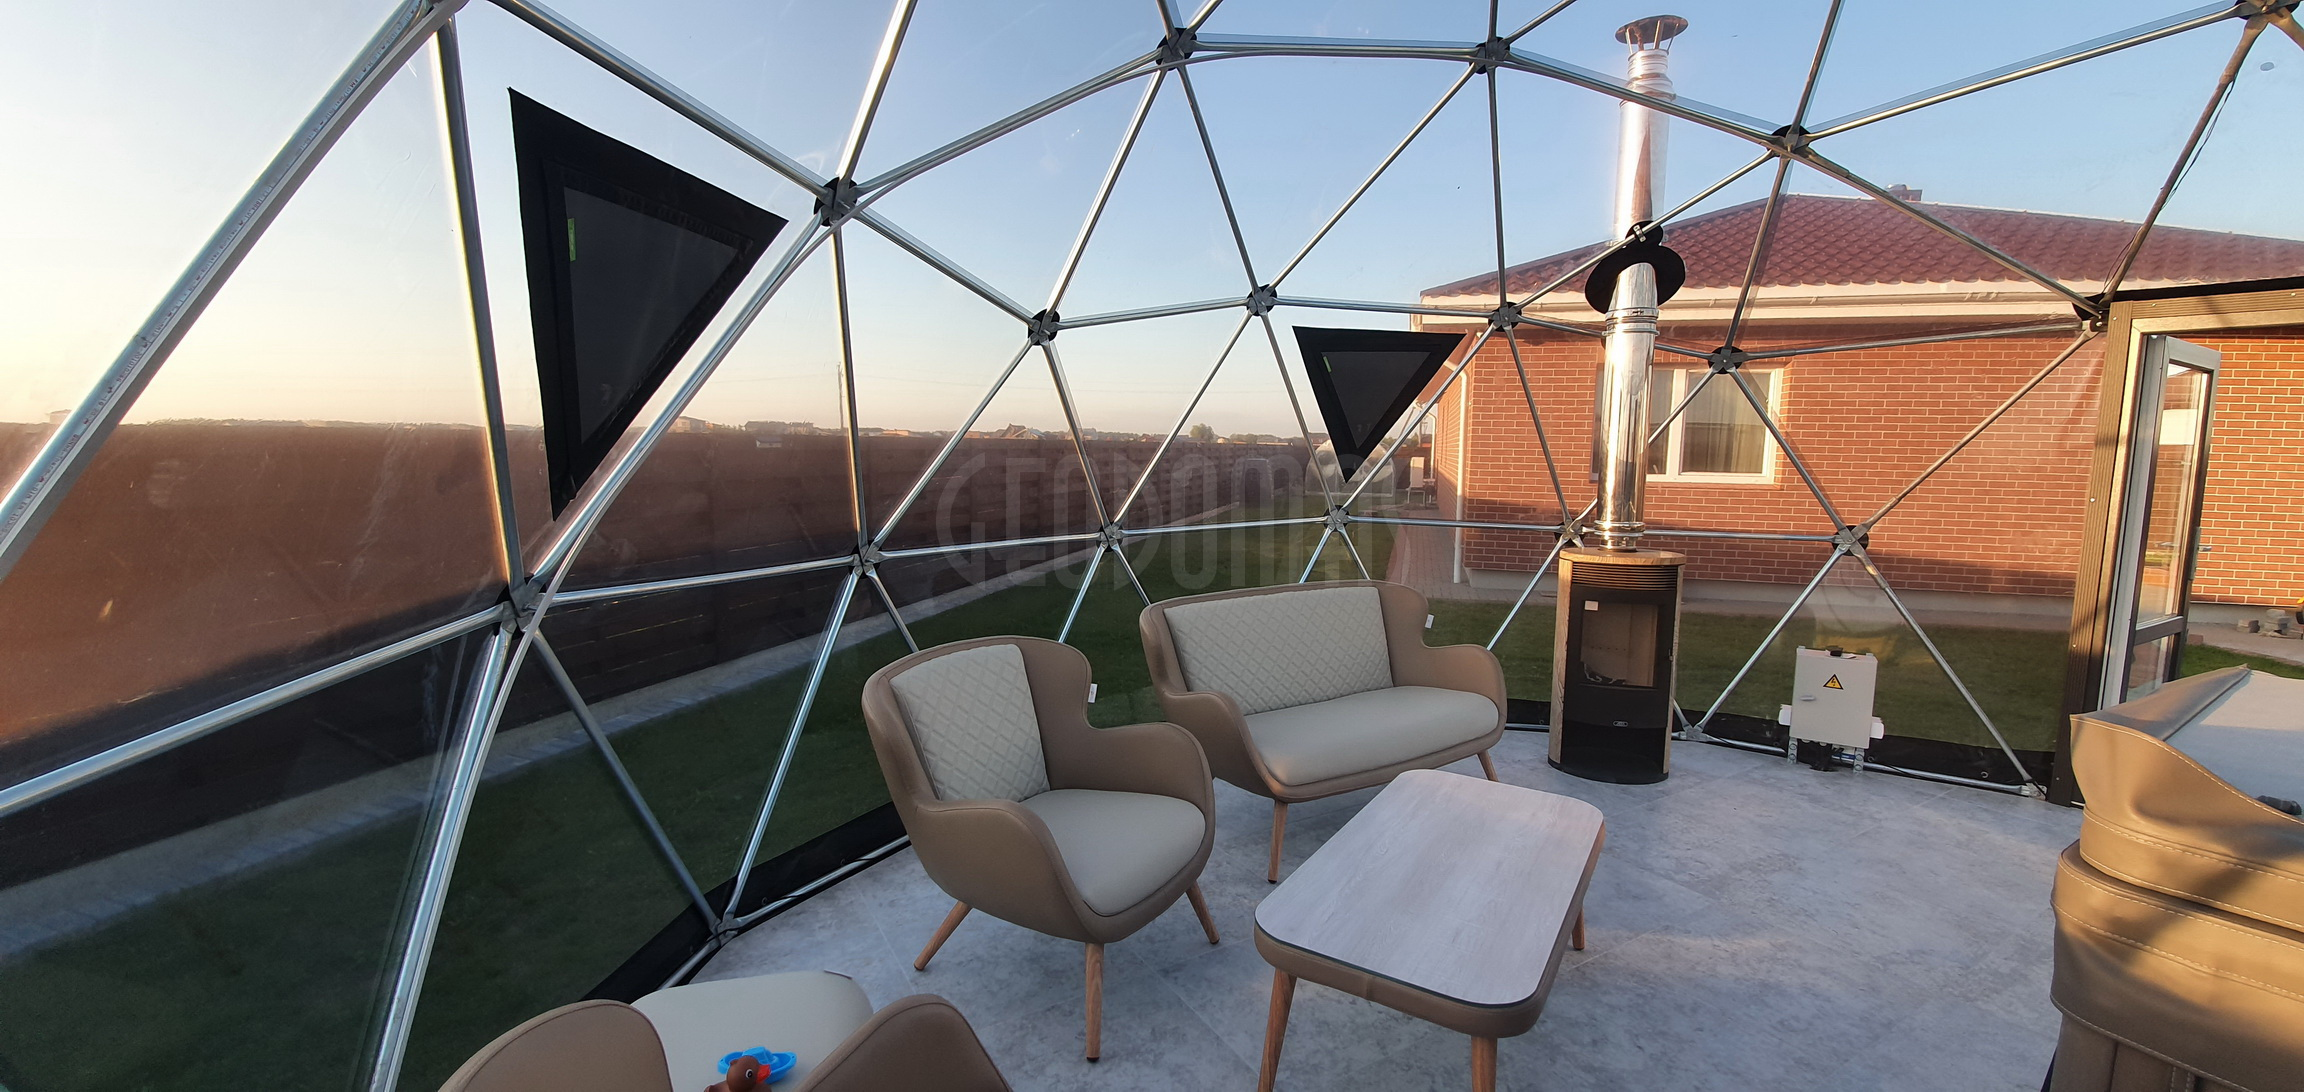 28m2 ⌀6m SPA Dome Jacuzzi – Full Transparent | Klaipeda